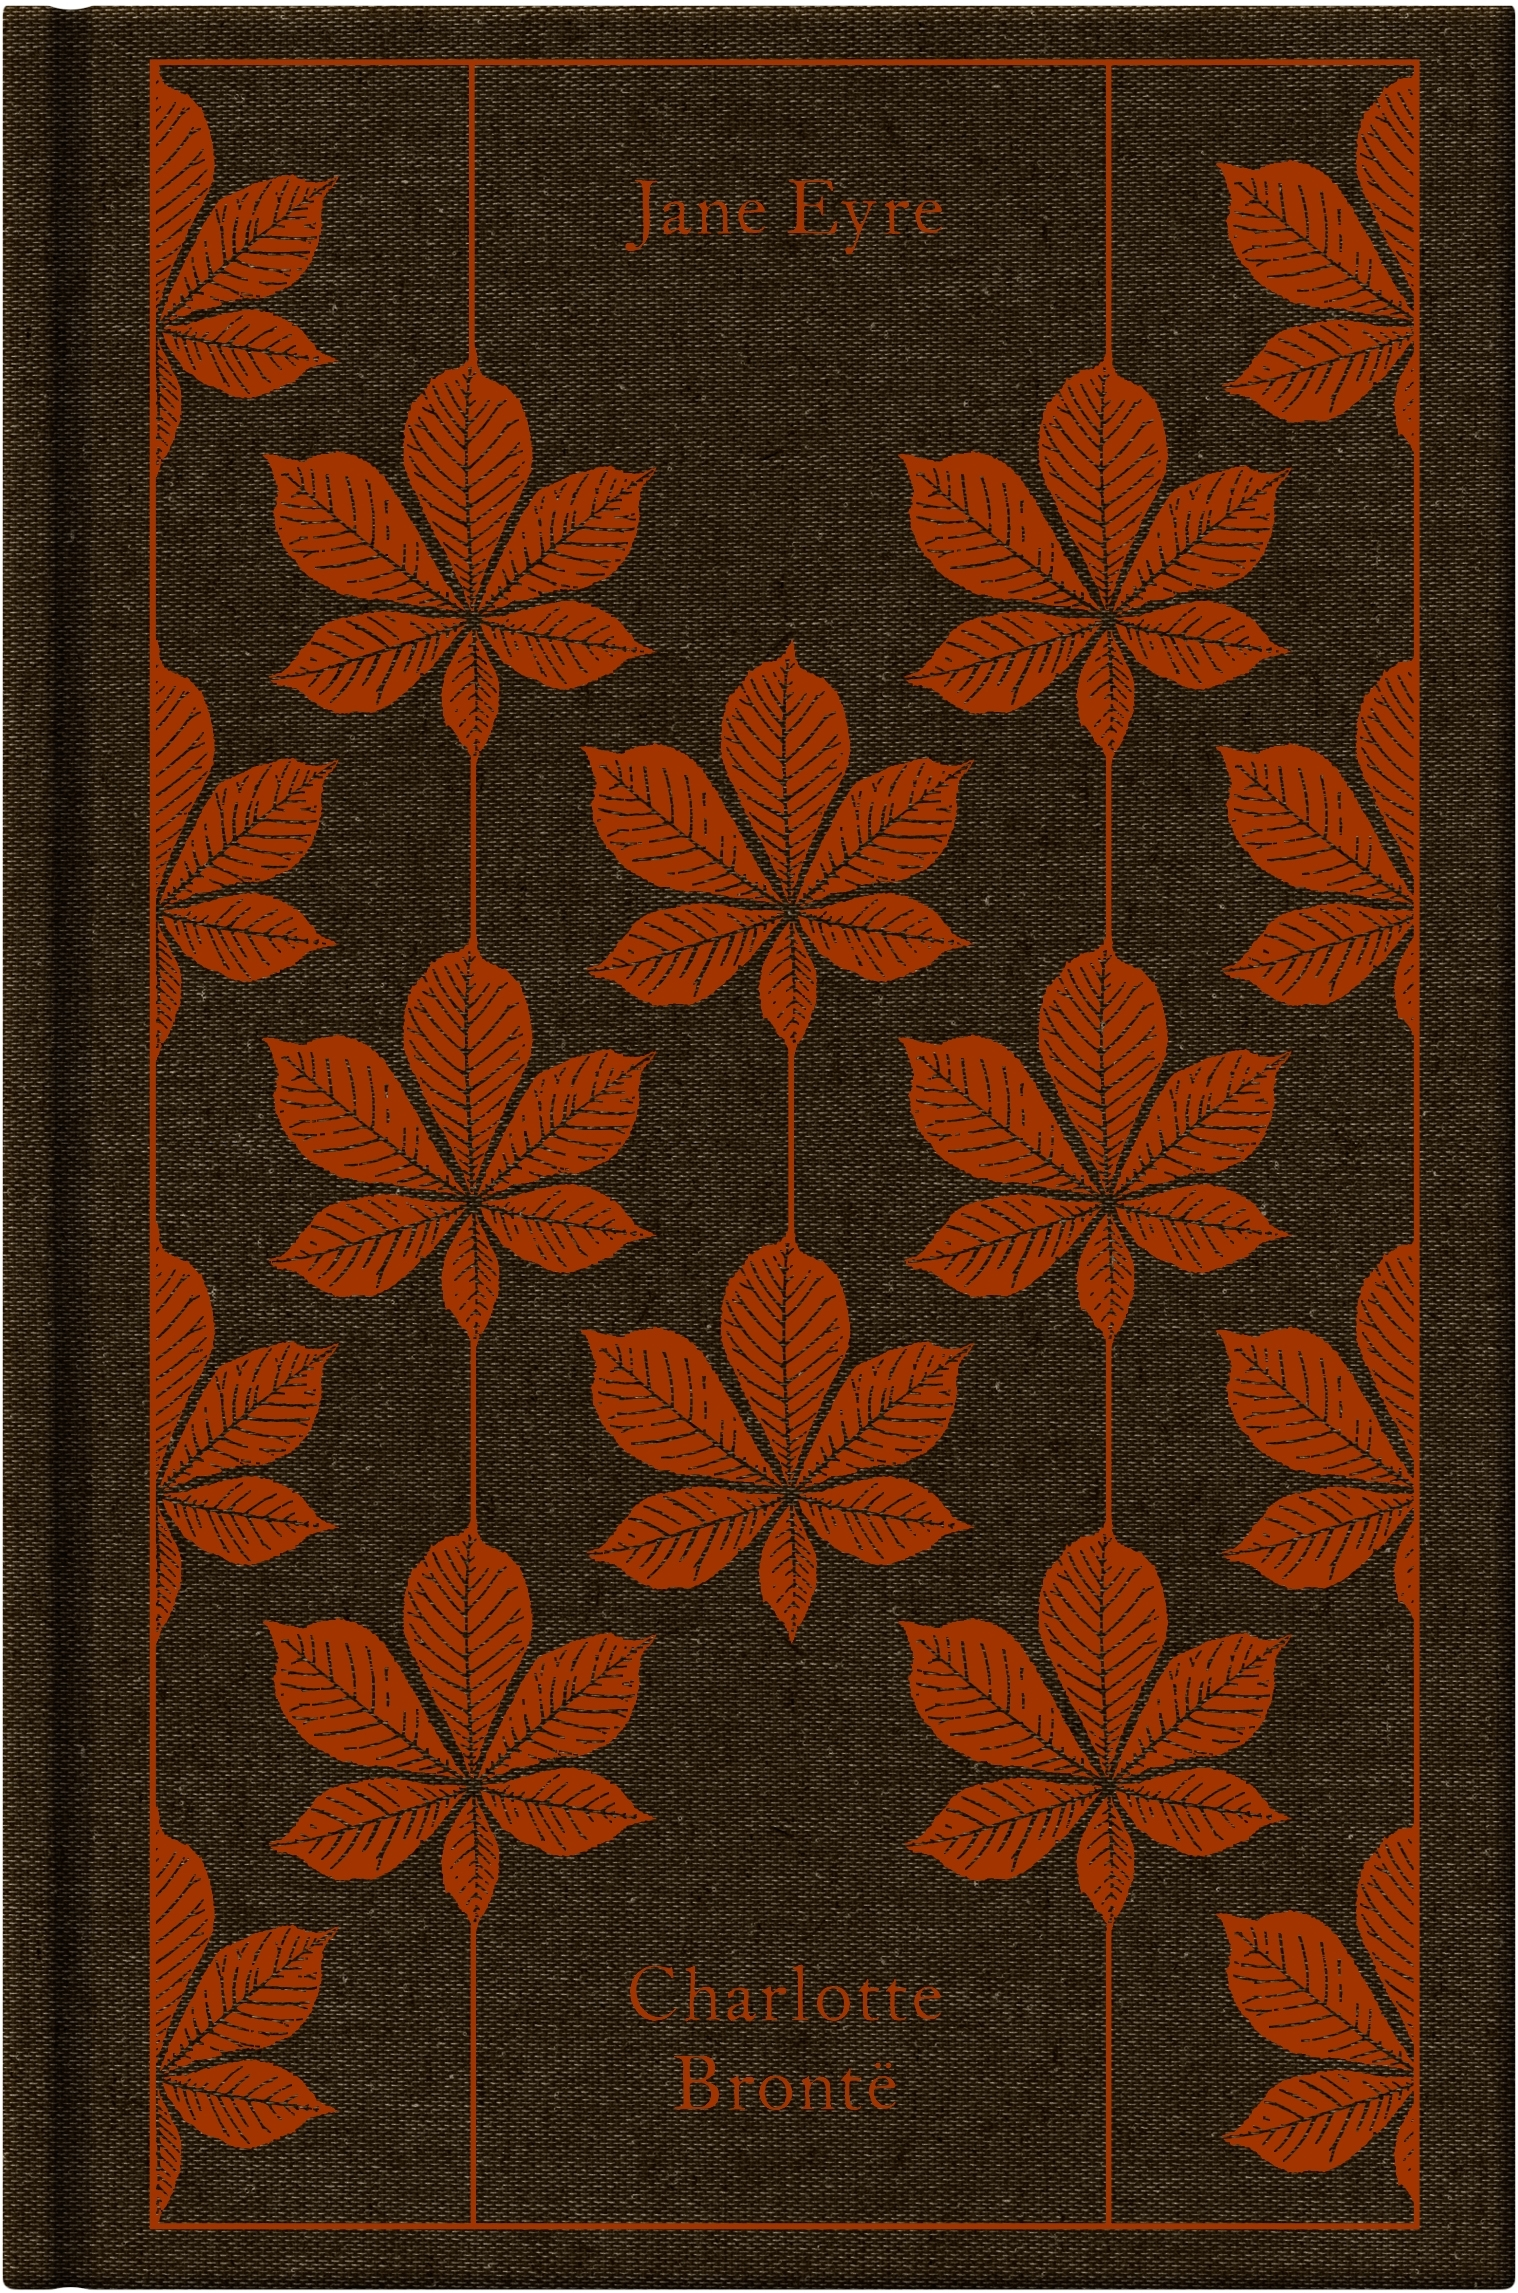 Jane Eyre Book Cover Penguin ~ Jane eyre design by coralie bickford smith penguin